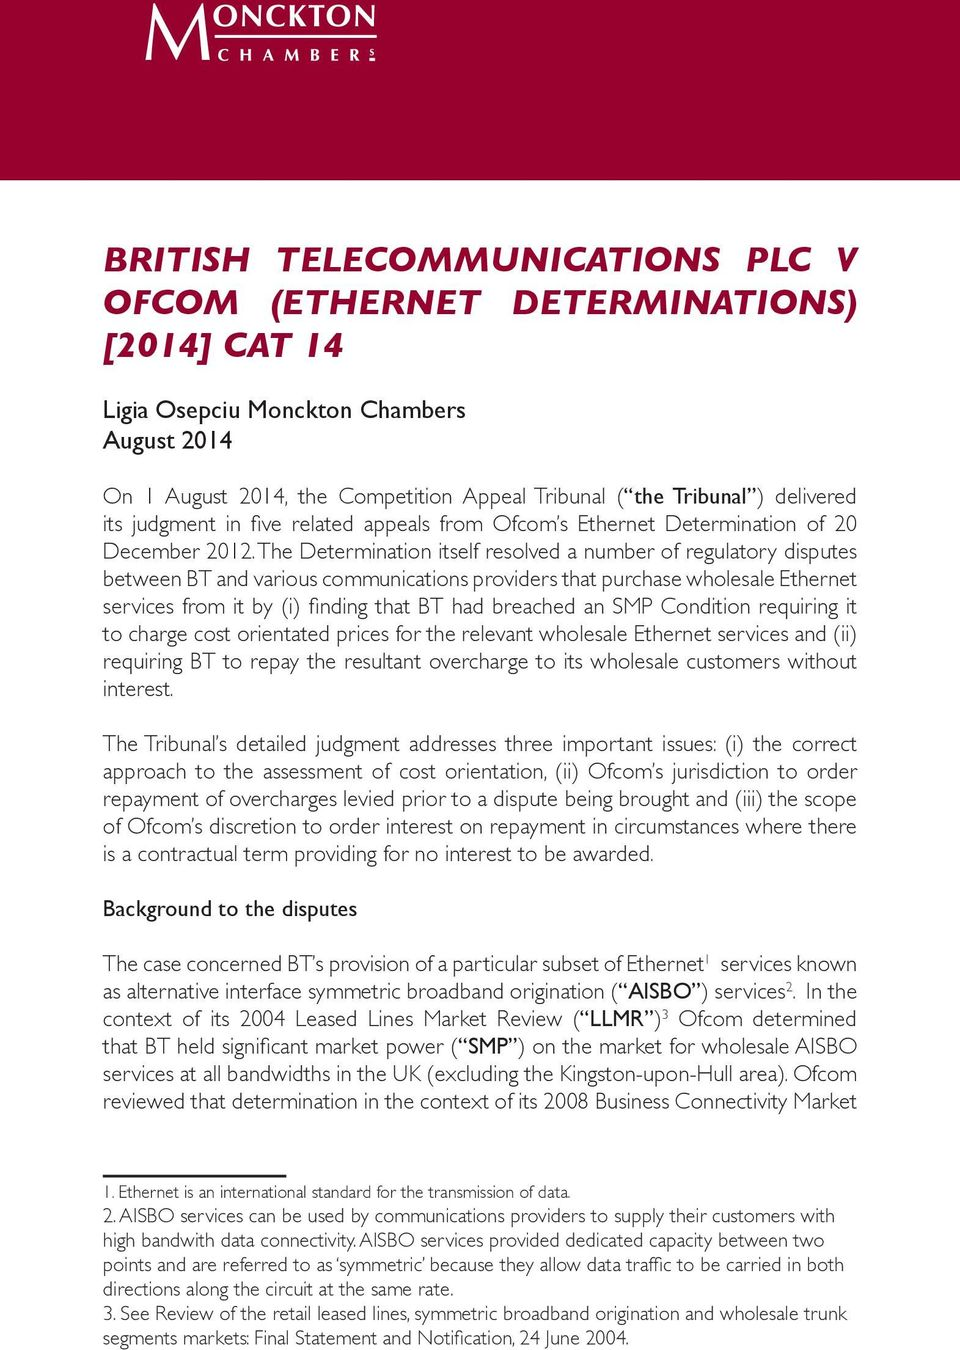 The Determination itself resolved a number of regulatory disputes between BT and various communications providers that purchase wholesale Ethernet services from it by (i) finding that BT had breached